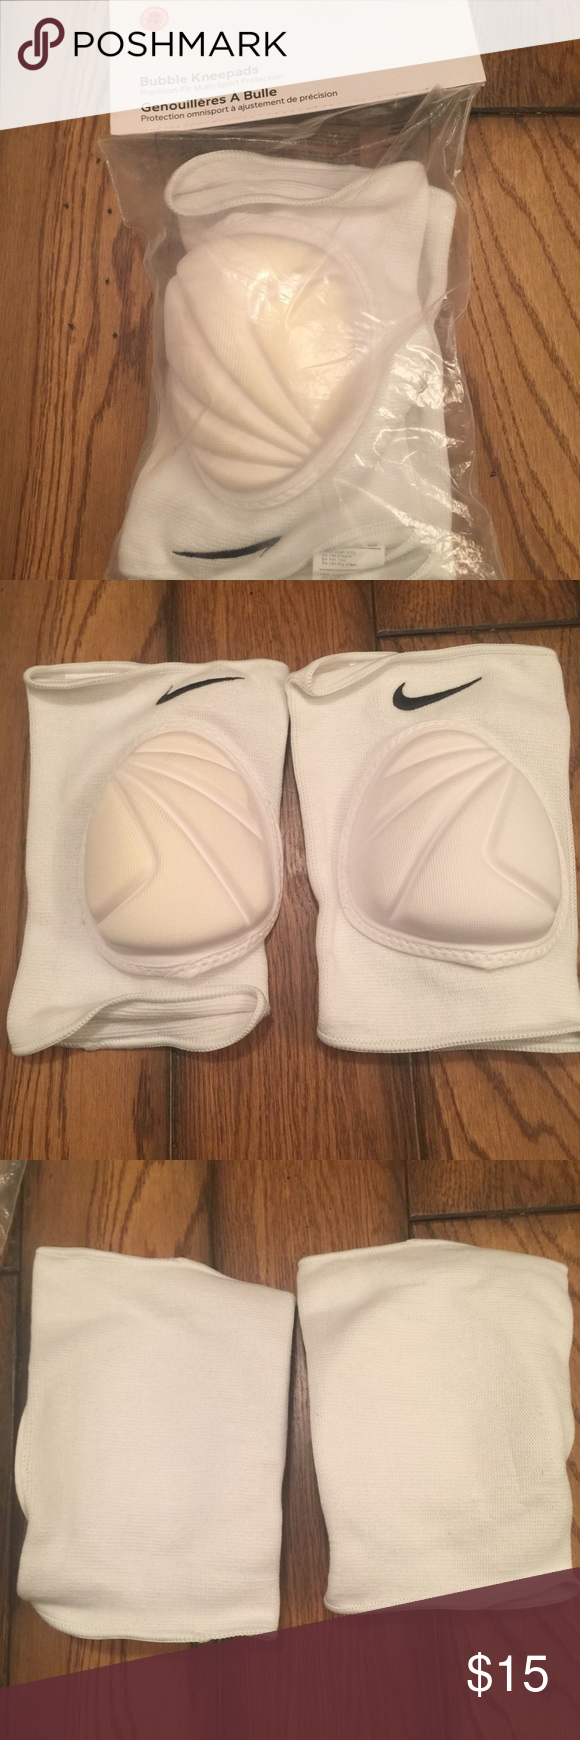 Volleyball Knee Pads Brand New Never Used Great For Indoor Volleyball One Knee Pad Is Slightly Discolored From Volleyball Knee Pads White Sneaker Knee Pads